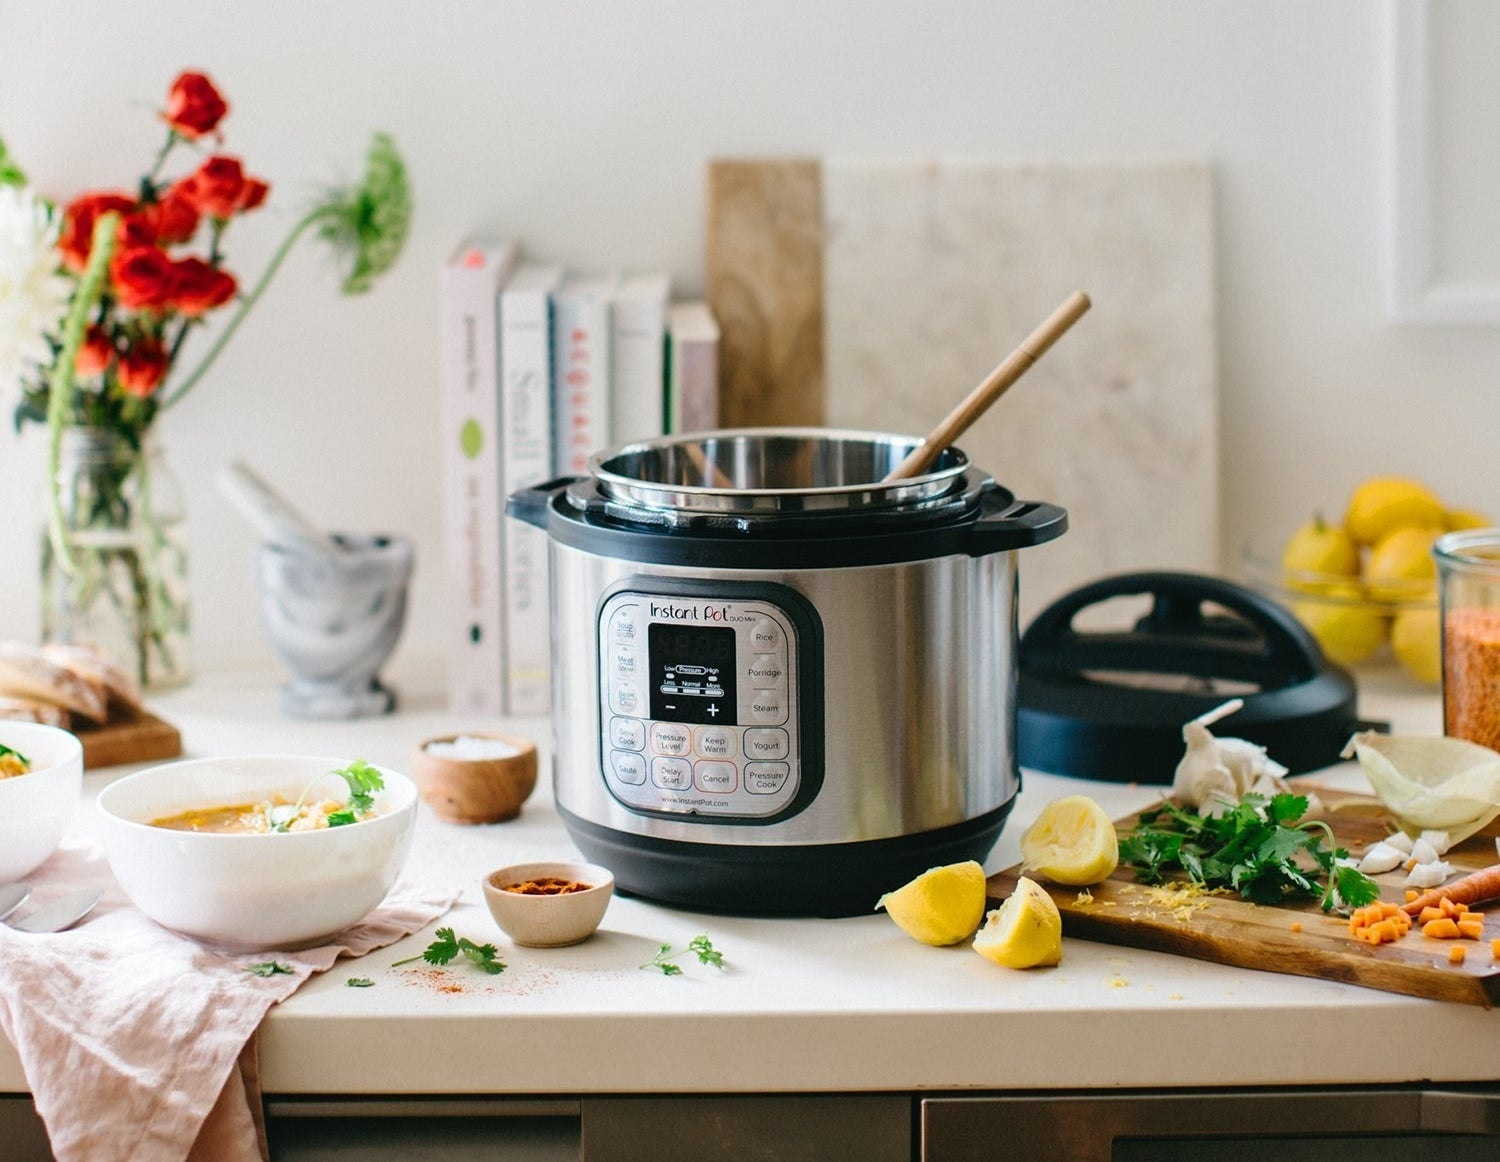 "It has seven functions: programmable pressure cooker, slow cooker, rice cooker, steamer, sauté, yogurt maker, and warmer.""I've used it almost every single day since I've gotten it! It's my new favorite cooking device! It takes so little time to prepare just about anything!"" —bayleaw2""Being able to cook (almost) everything in one pot is nice, but more than that, the way it transforms cheap cuts of meat into buttery tender deliciousness is more than worth the cost."" —Dora Breckinridge, FacebookGet it from Walmart for $99.95 (6 Qt)."